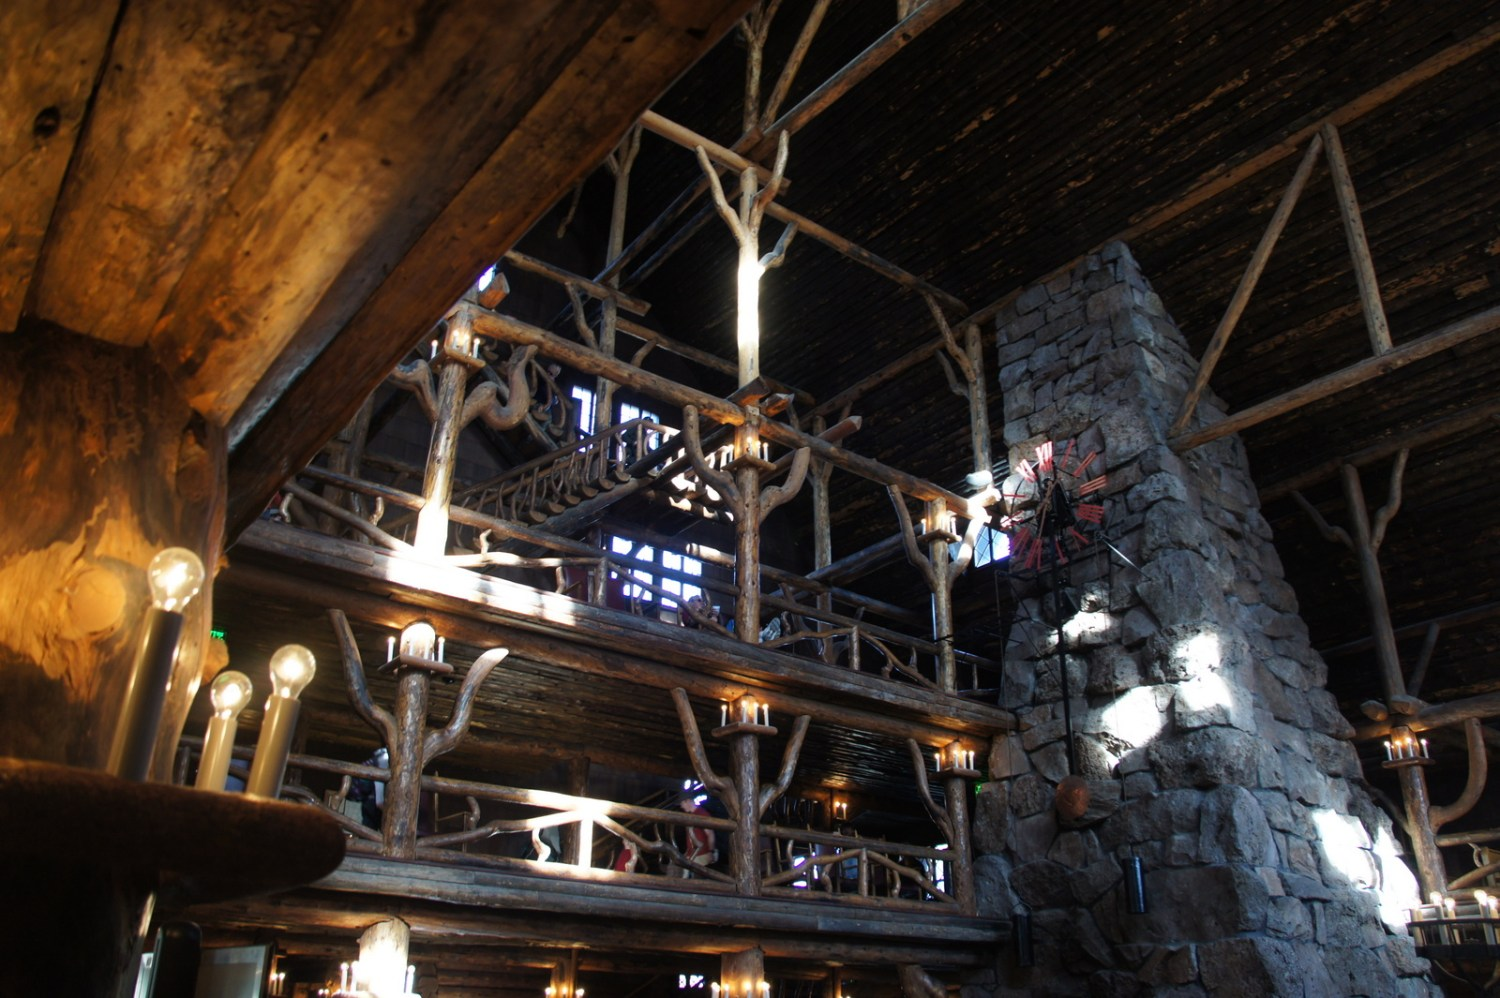 The majestic, old-timber lodge near Old Faithful. A great dinner in a cool rustic space that reminded me of Timberline near Mt. Hood.